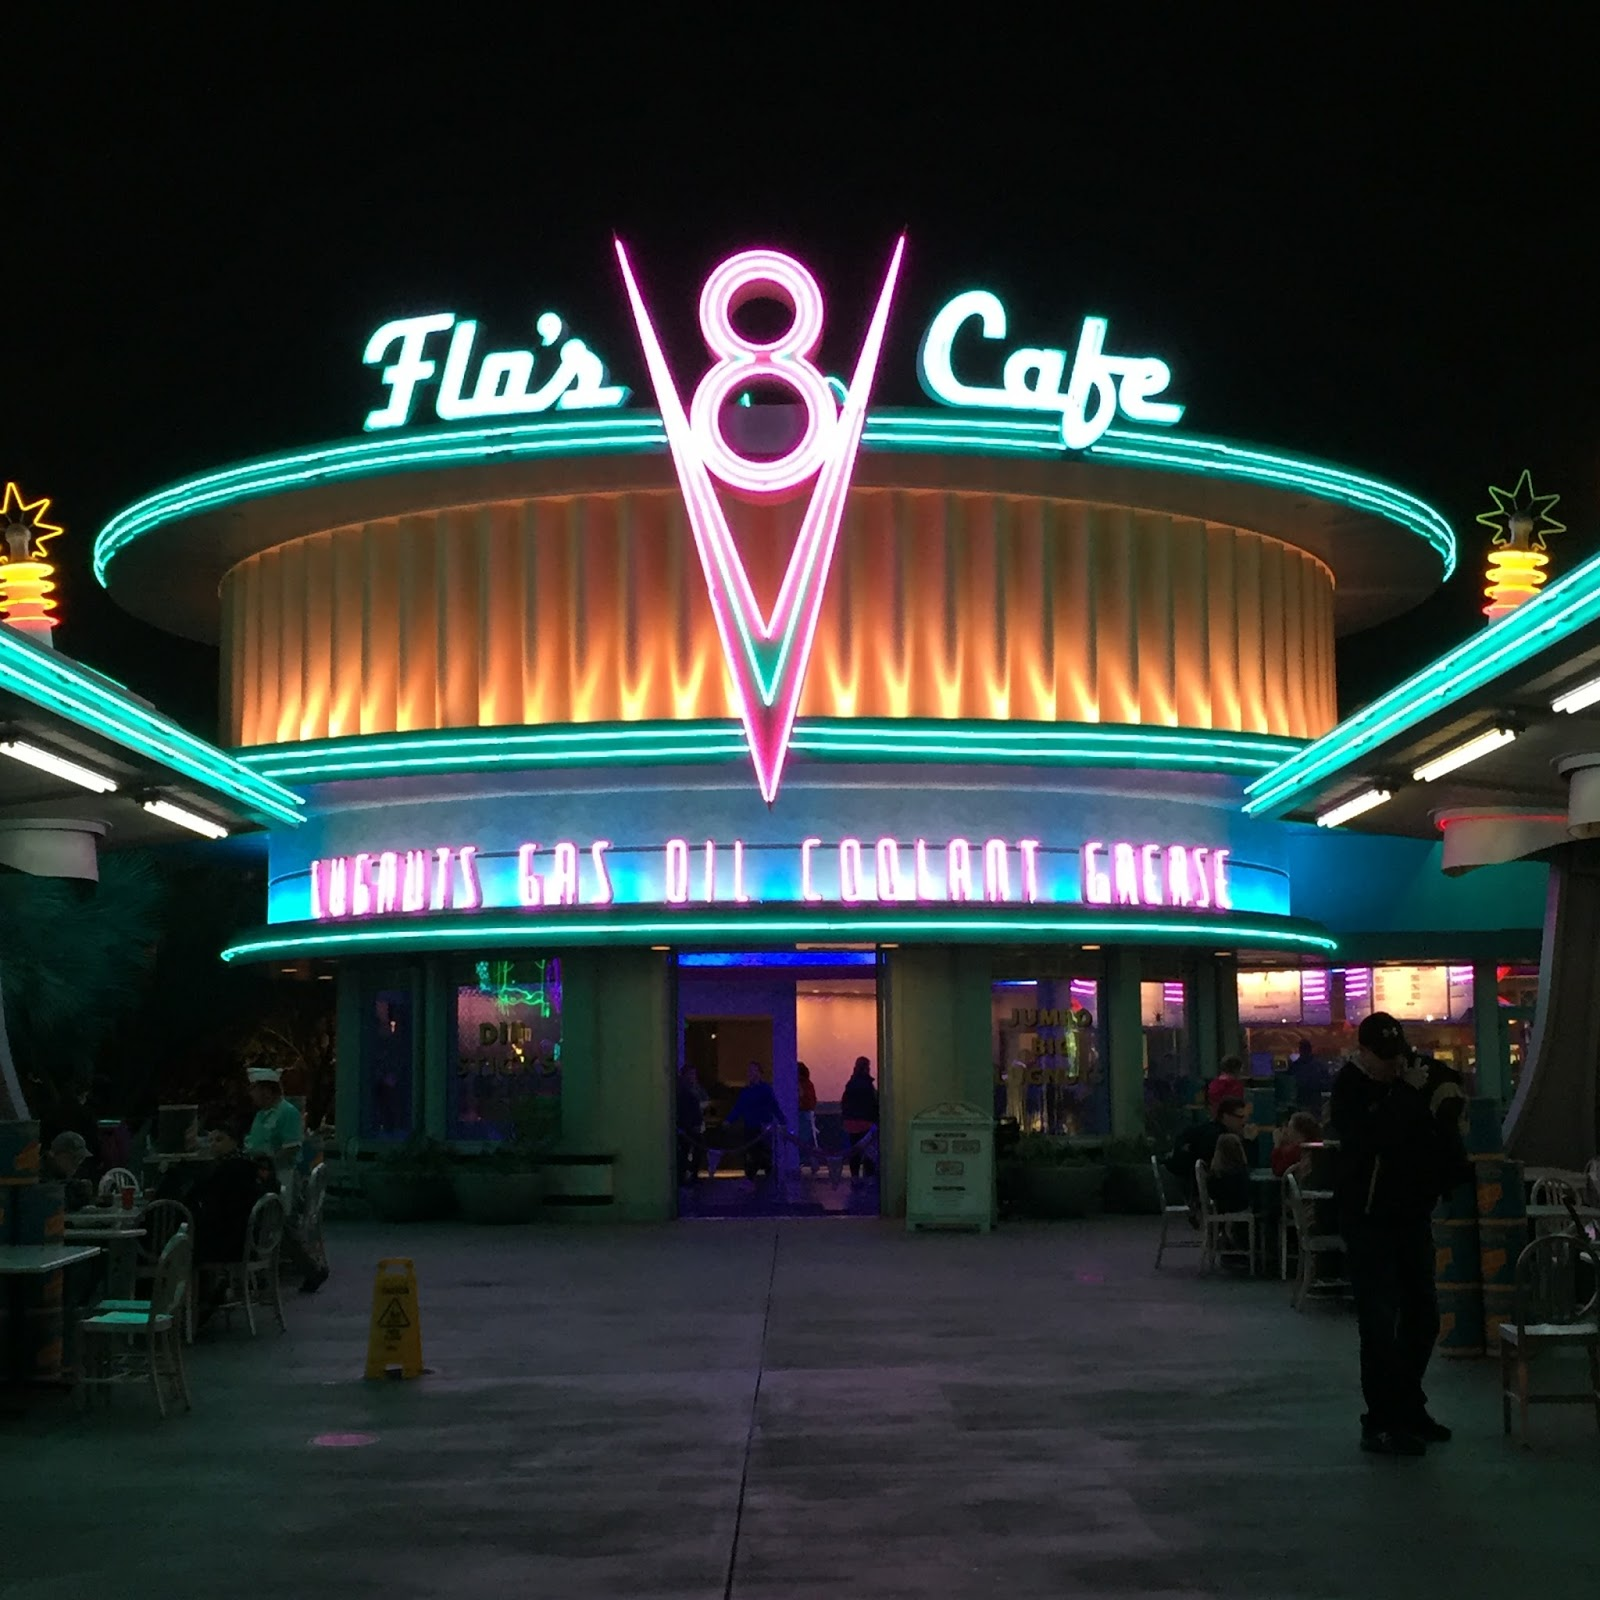 Flo's Cafe in Cars Land